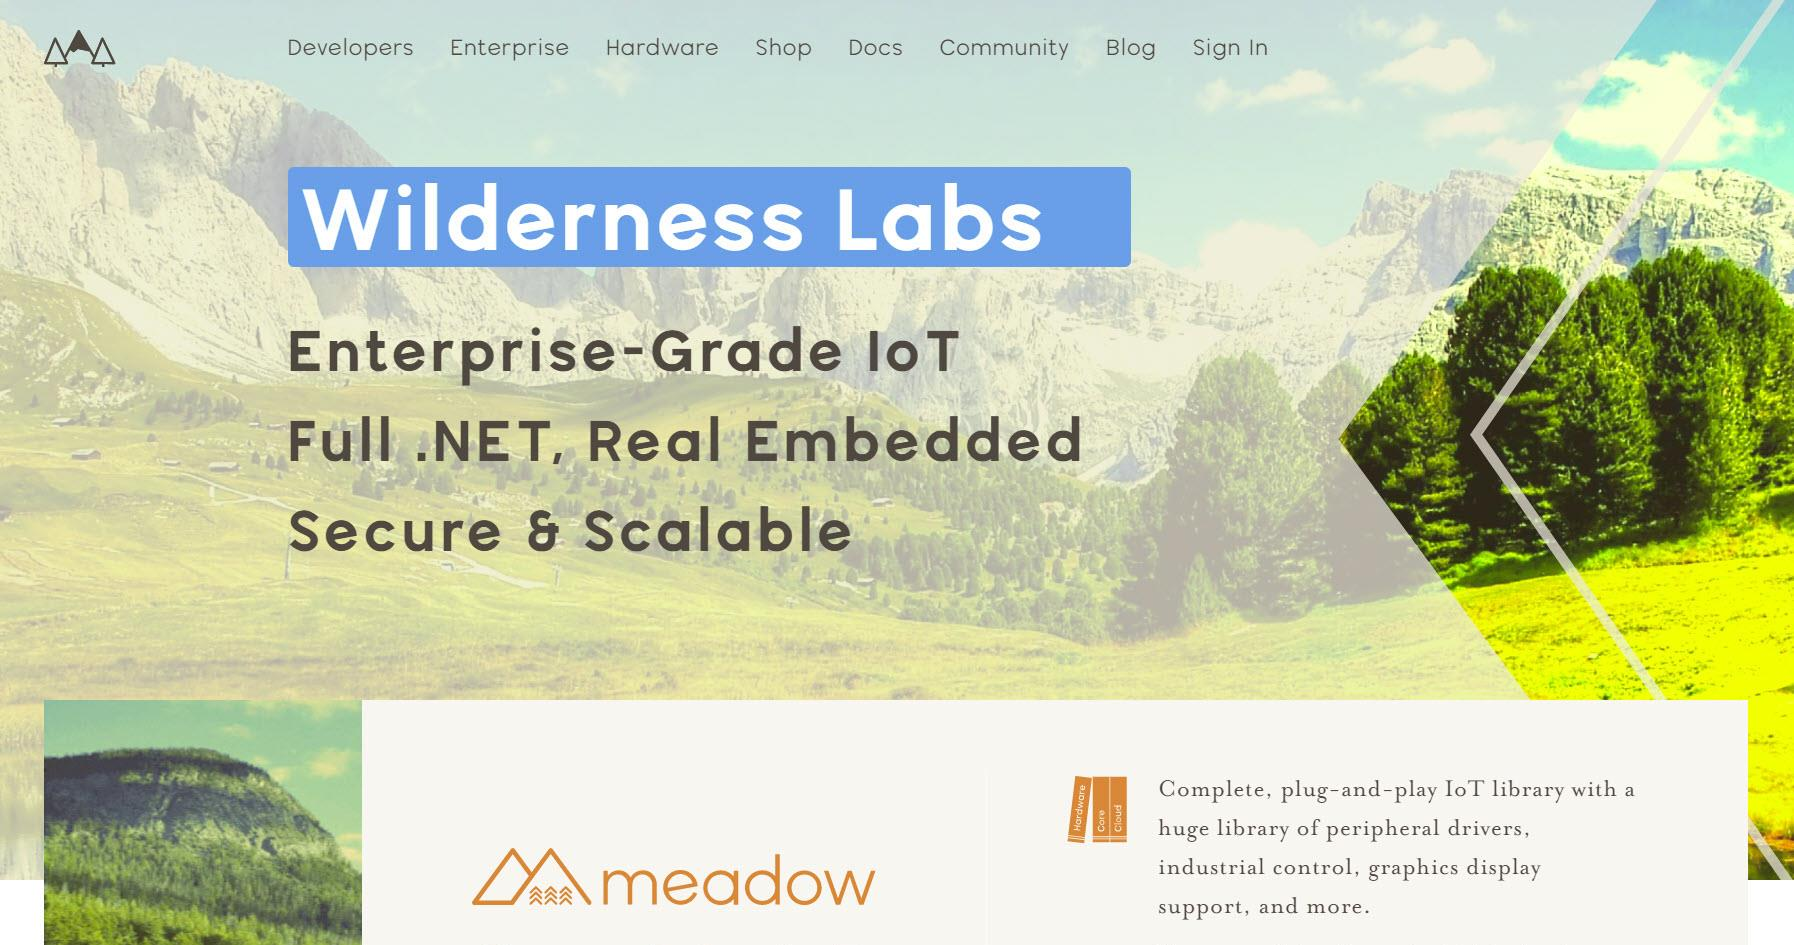 Wilderness Labs WebSite